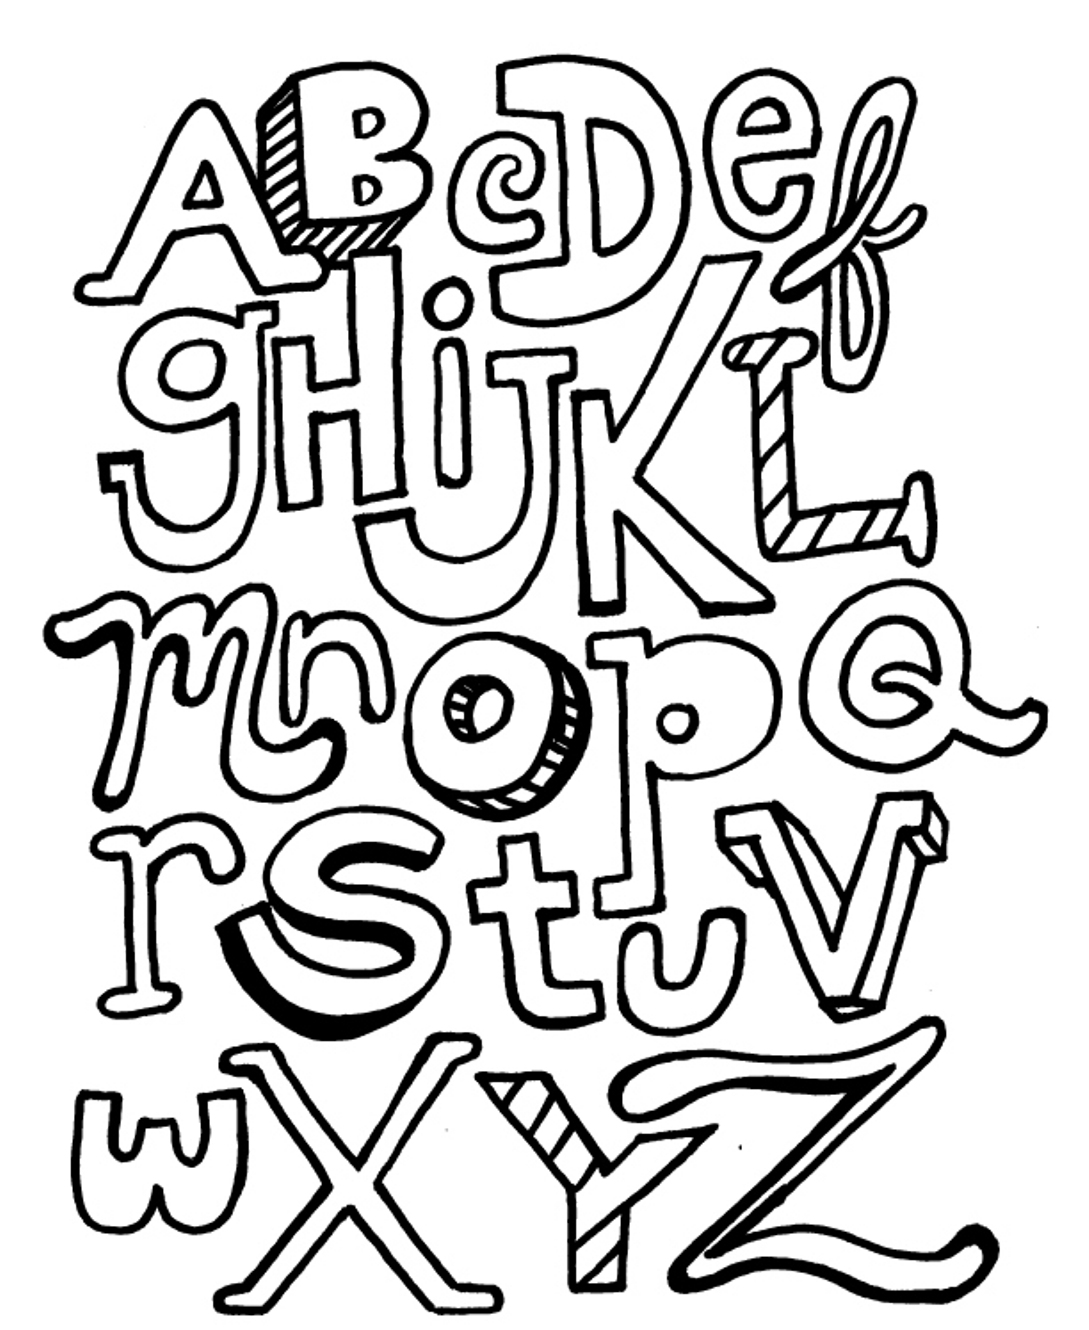 letter a coloring page english alphabet coloring pages judy havrilla page a letter coloring